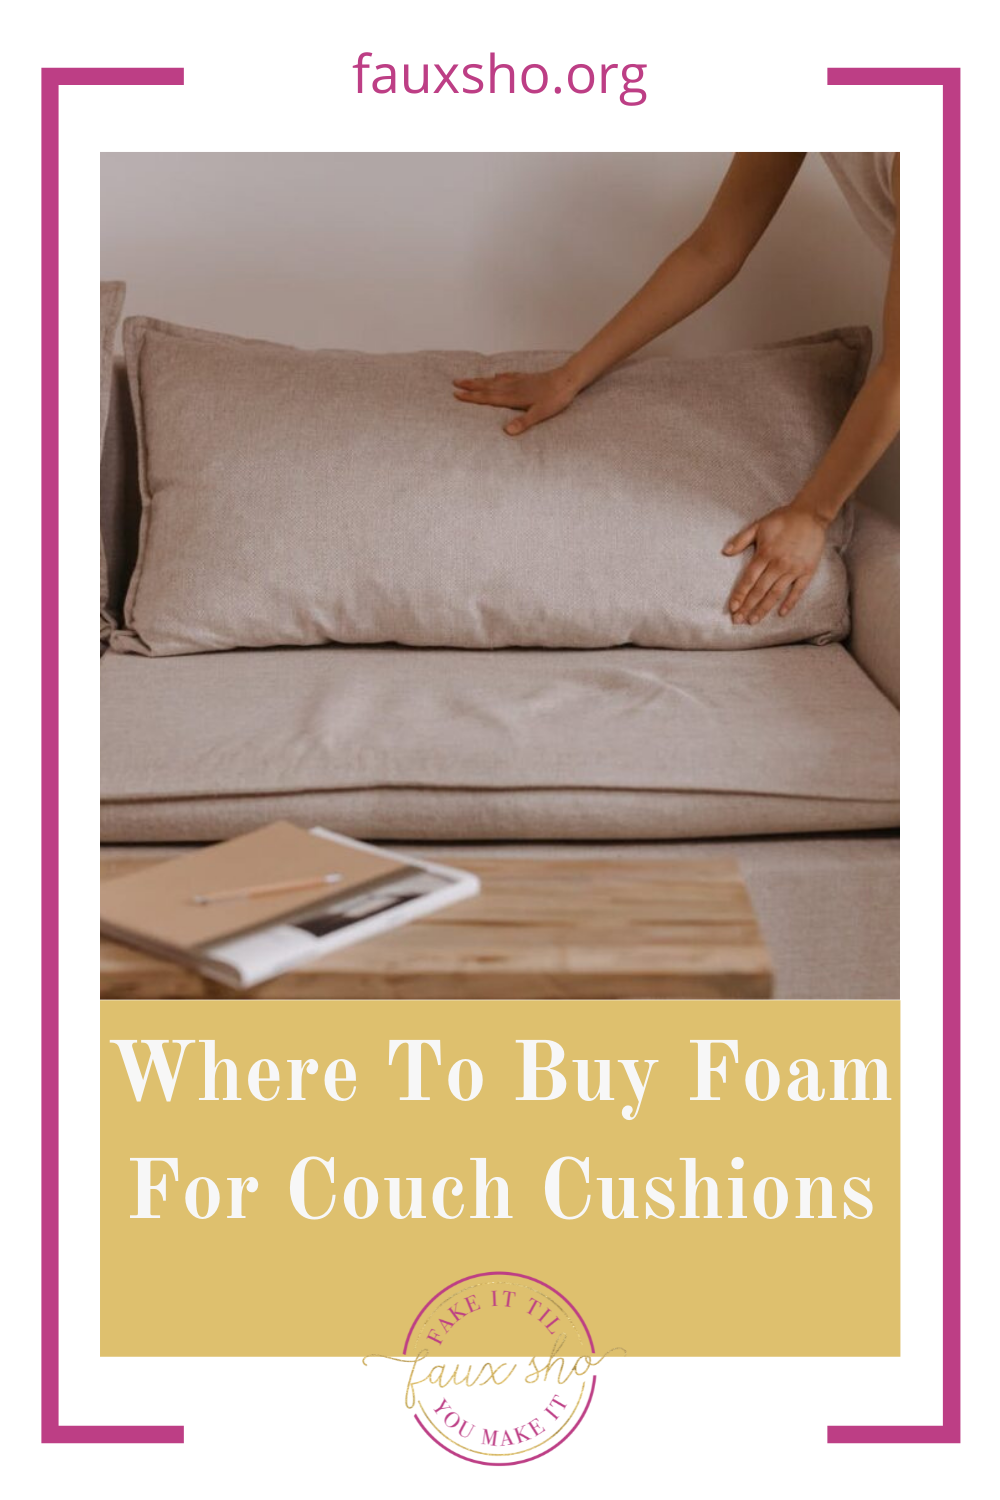 Fauxsho.org is loaded with DIY ideas for crafters of all skill levels and abilities! Transform your space into something unique and personal. Find out the best places to get replacement foam for old couch cushions!